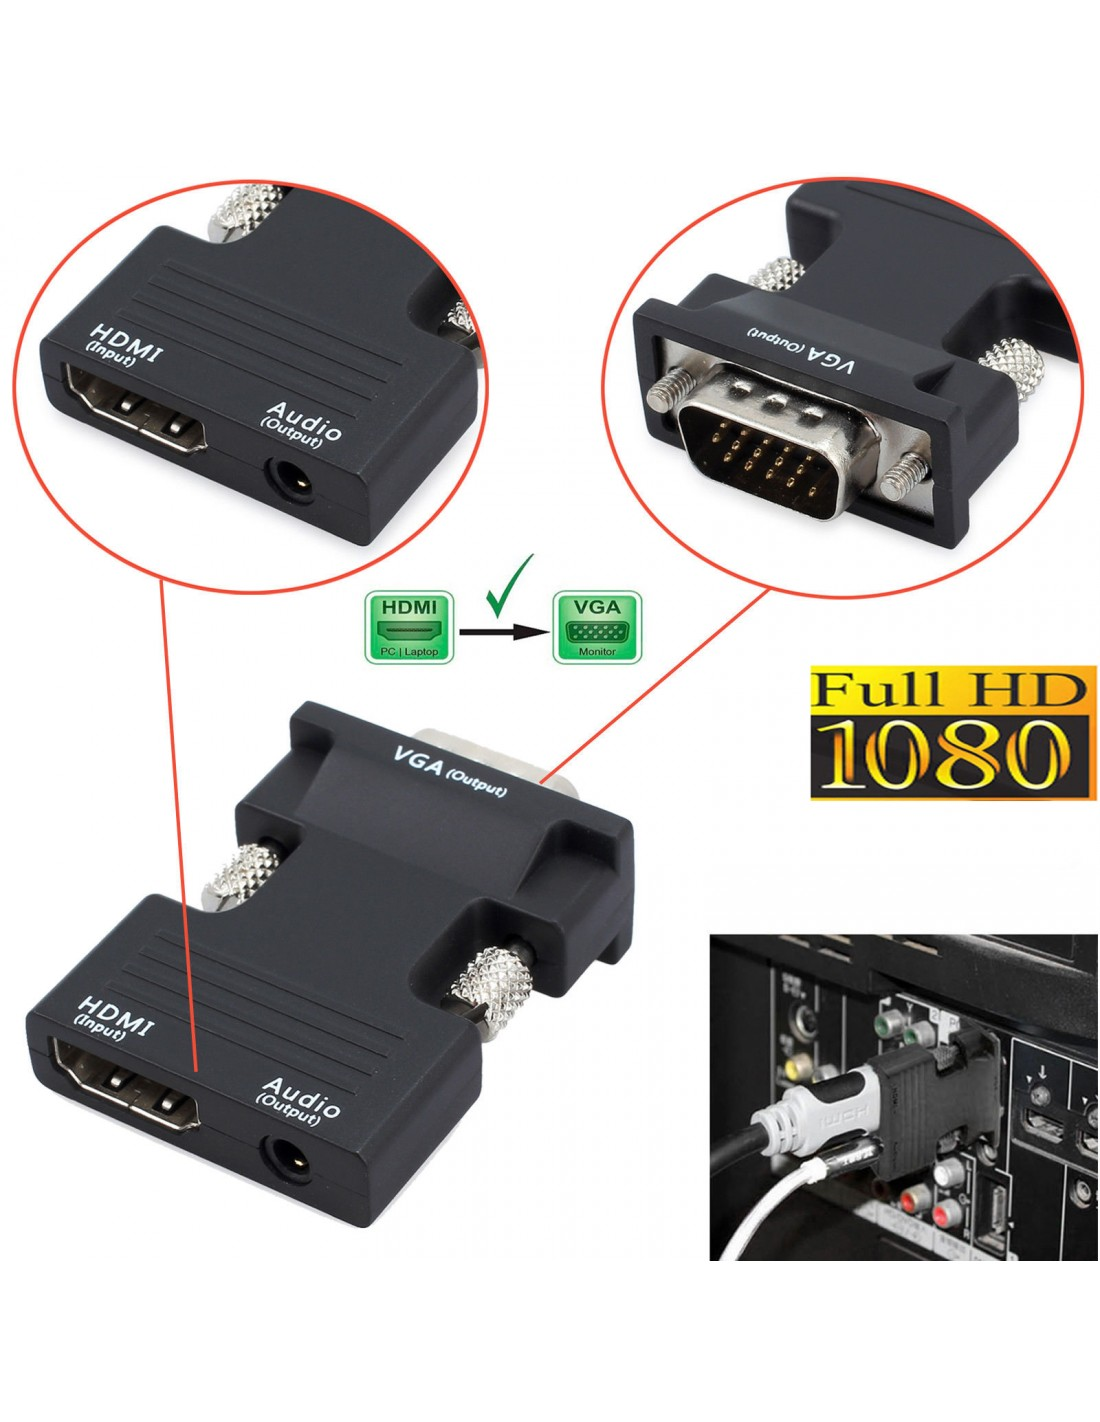 1080P HDMI to VGA Adapter Digital To Analog Audio Video